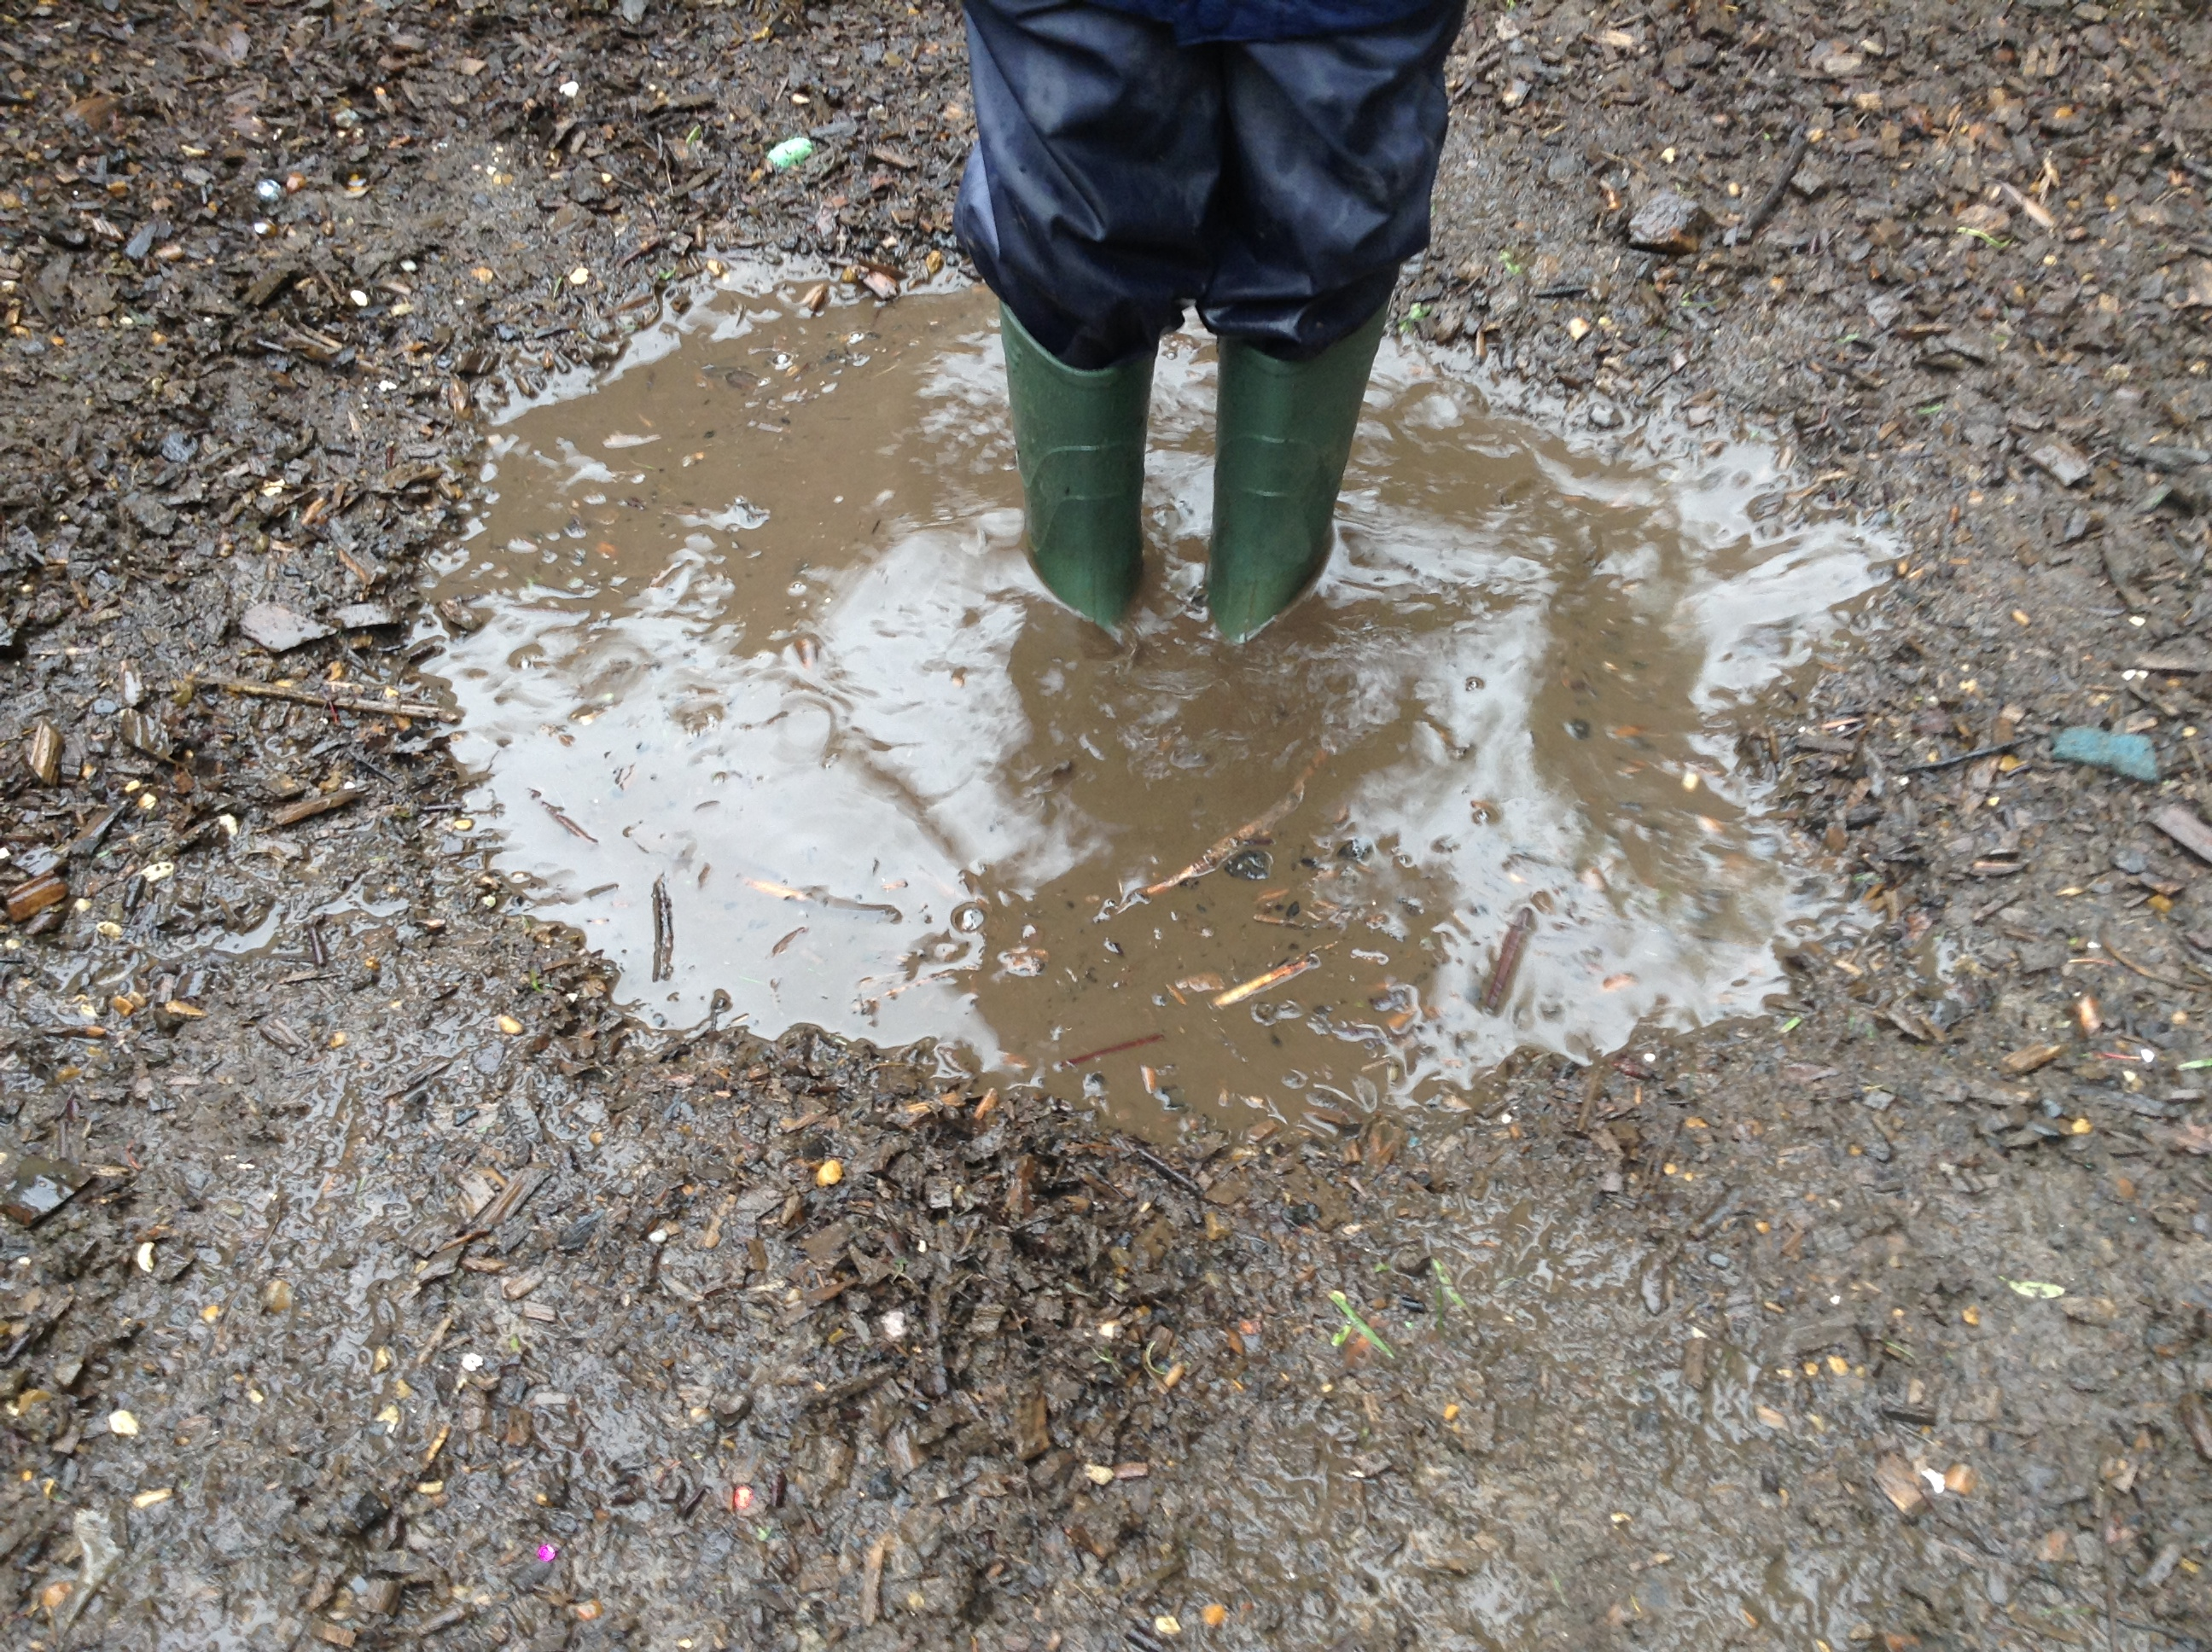 Jumping in Muddy Puddles! | EYFSMatters